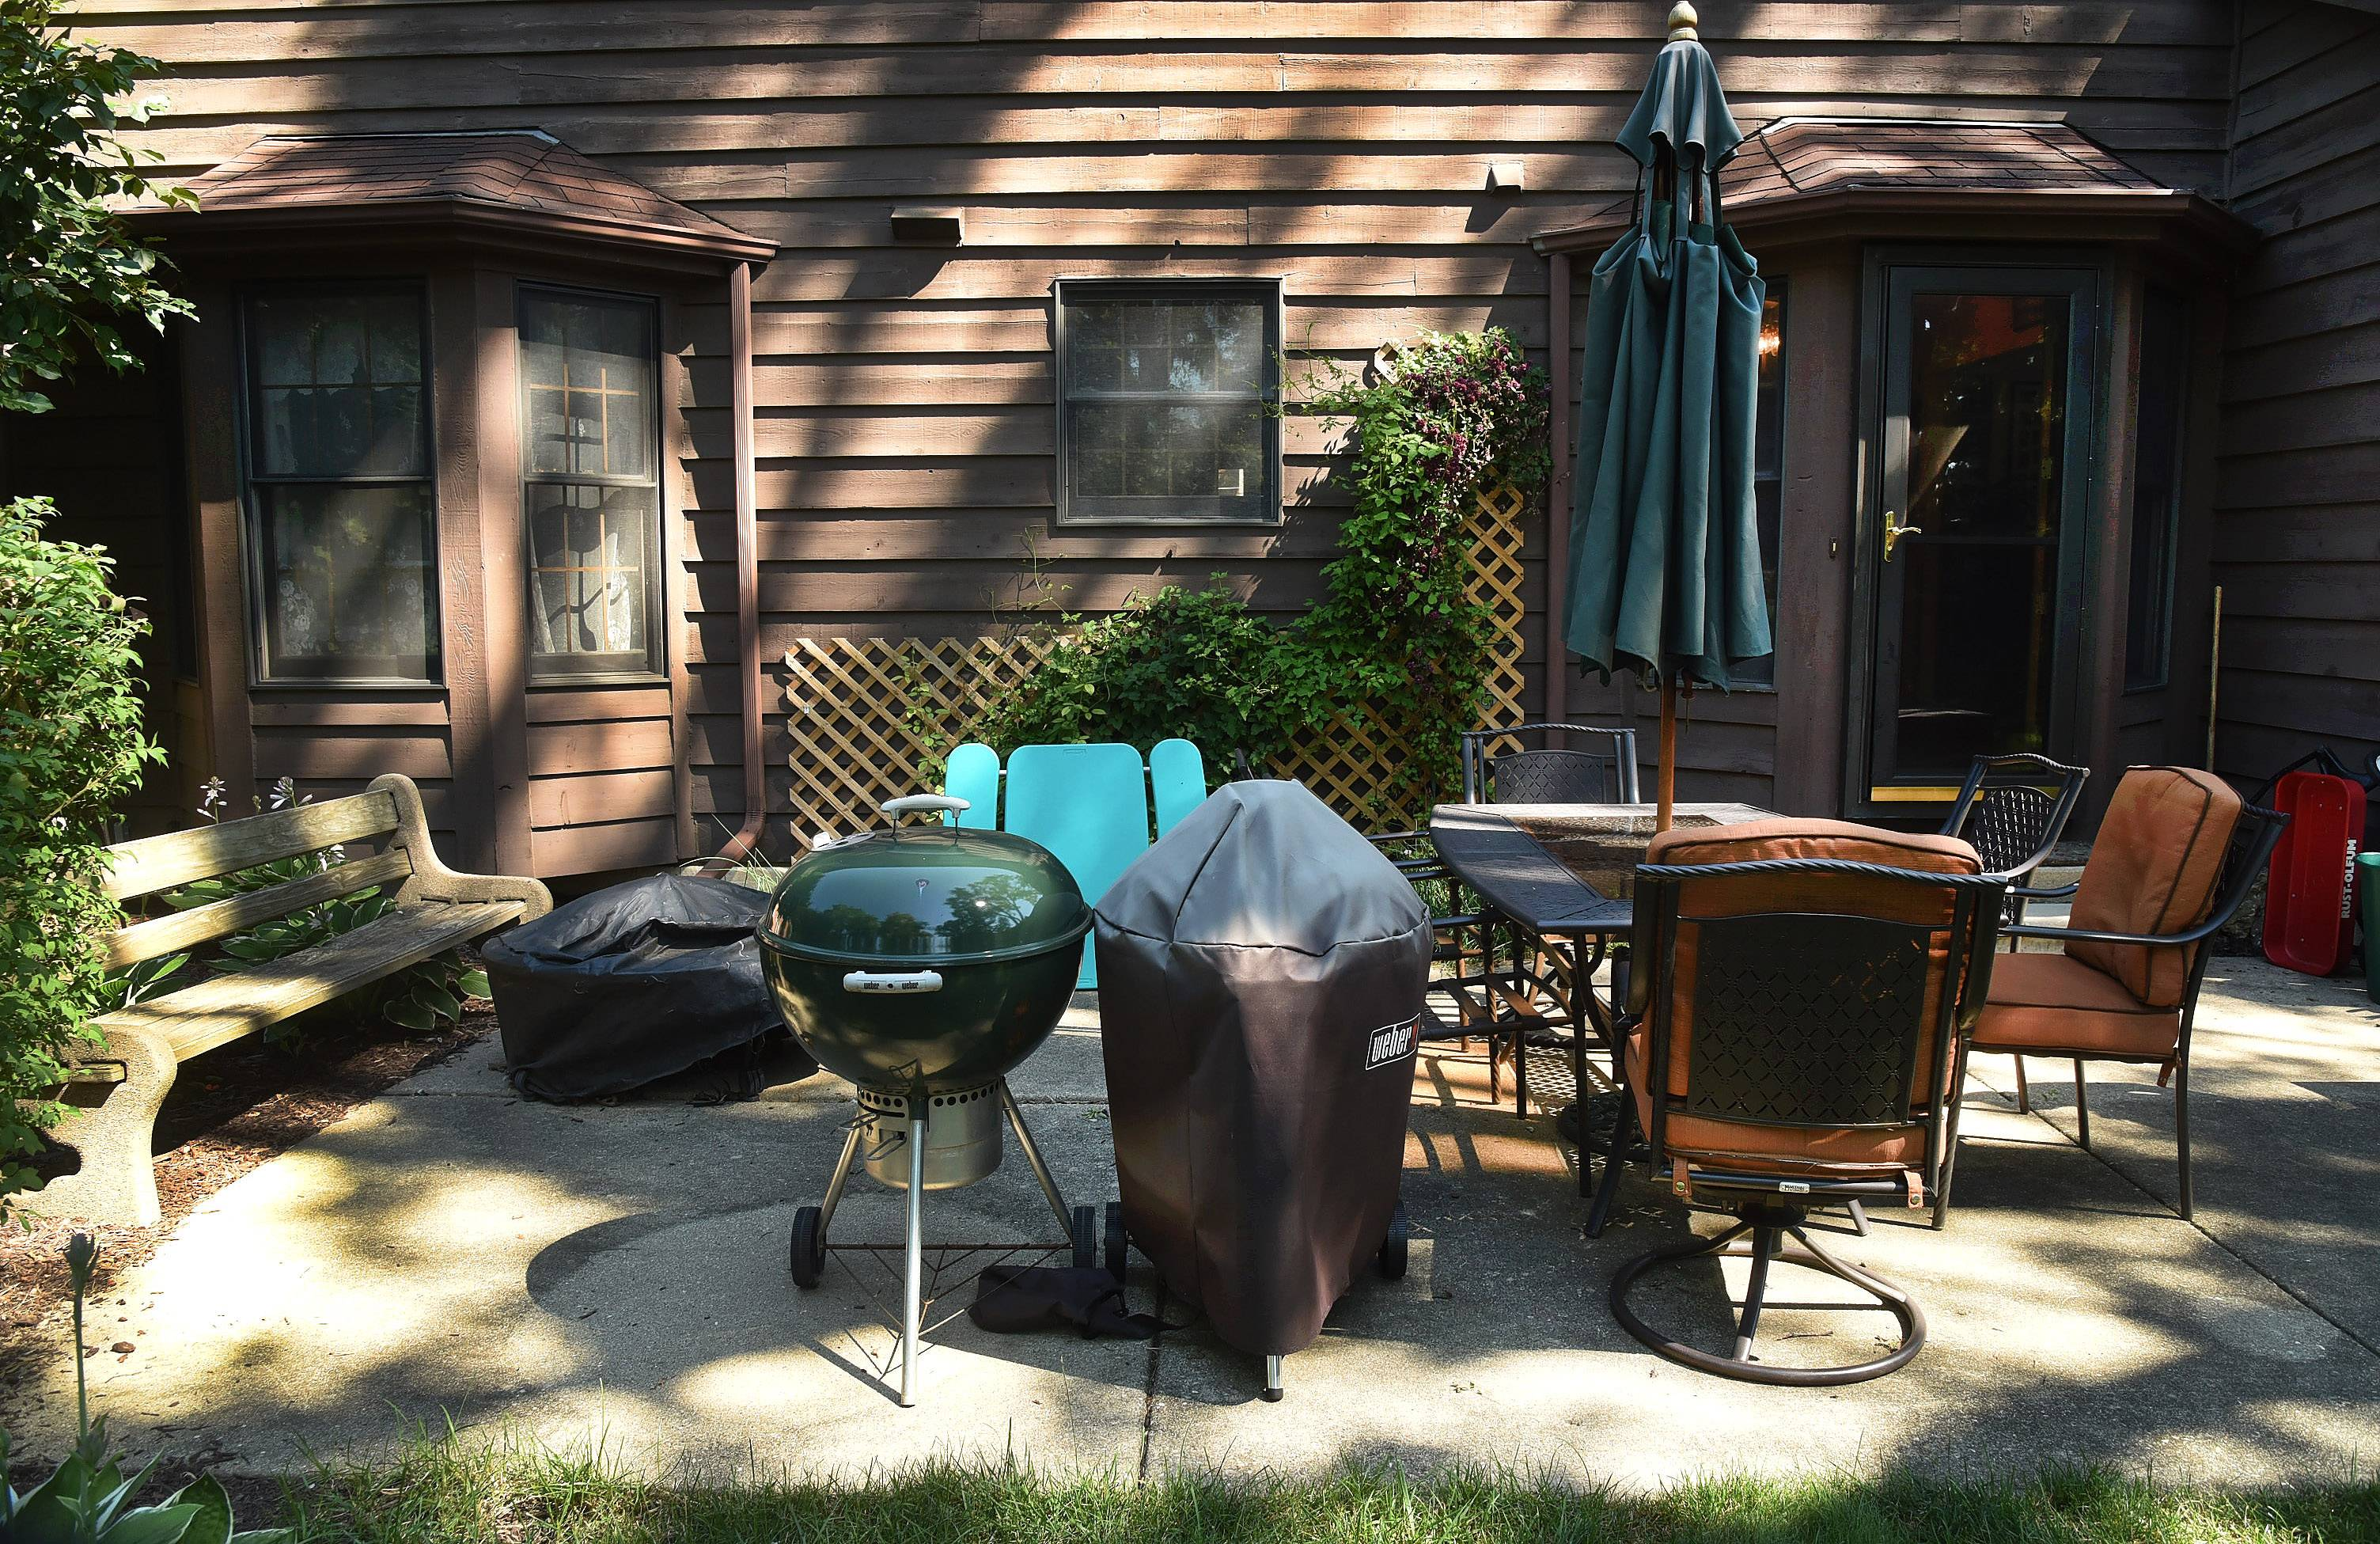 Get Your Summer On contest winners Shirley and Larry Allison's backyard in Des Plaines prior to its makeover.